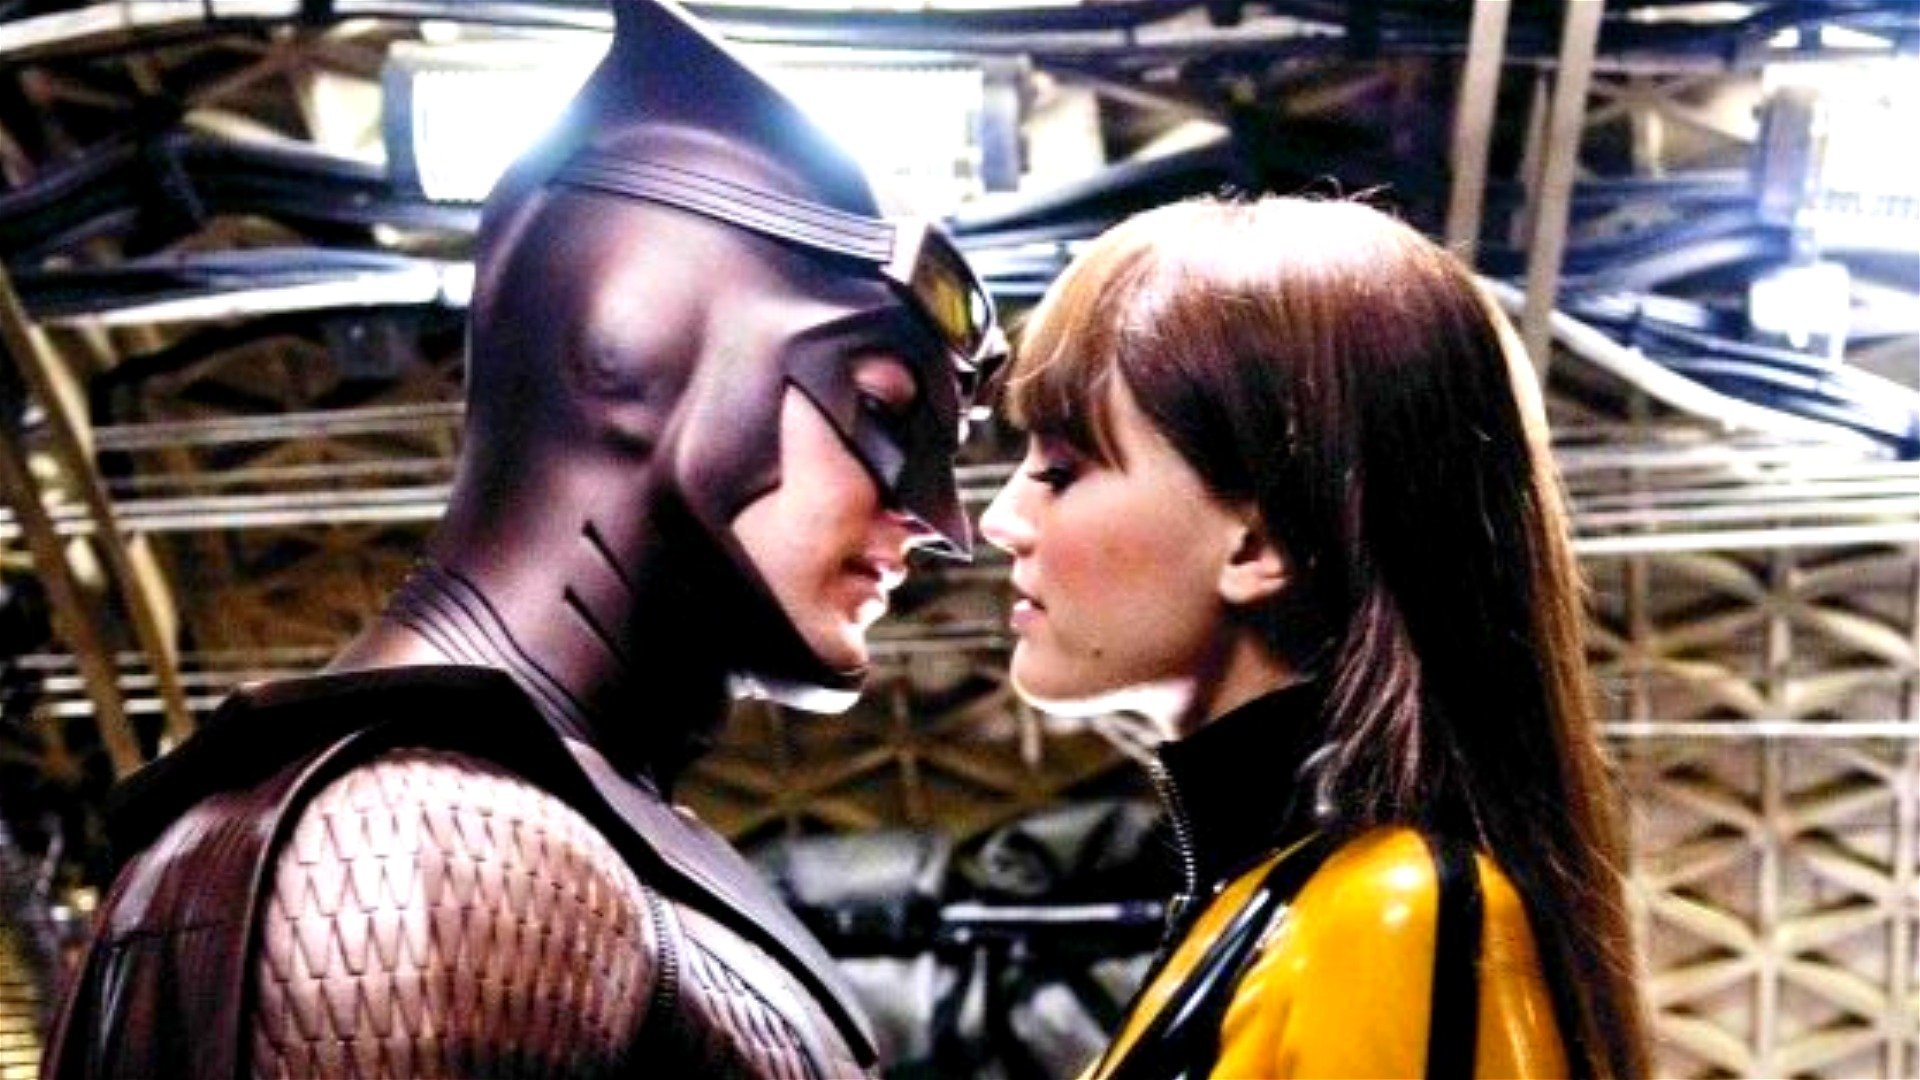 Cringe-Worthy Love Scenes That Almost Ruined The Whole Movie